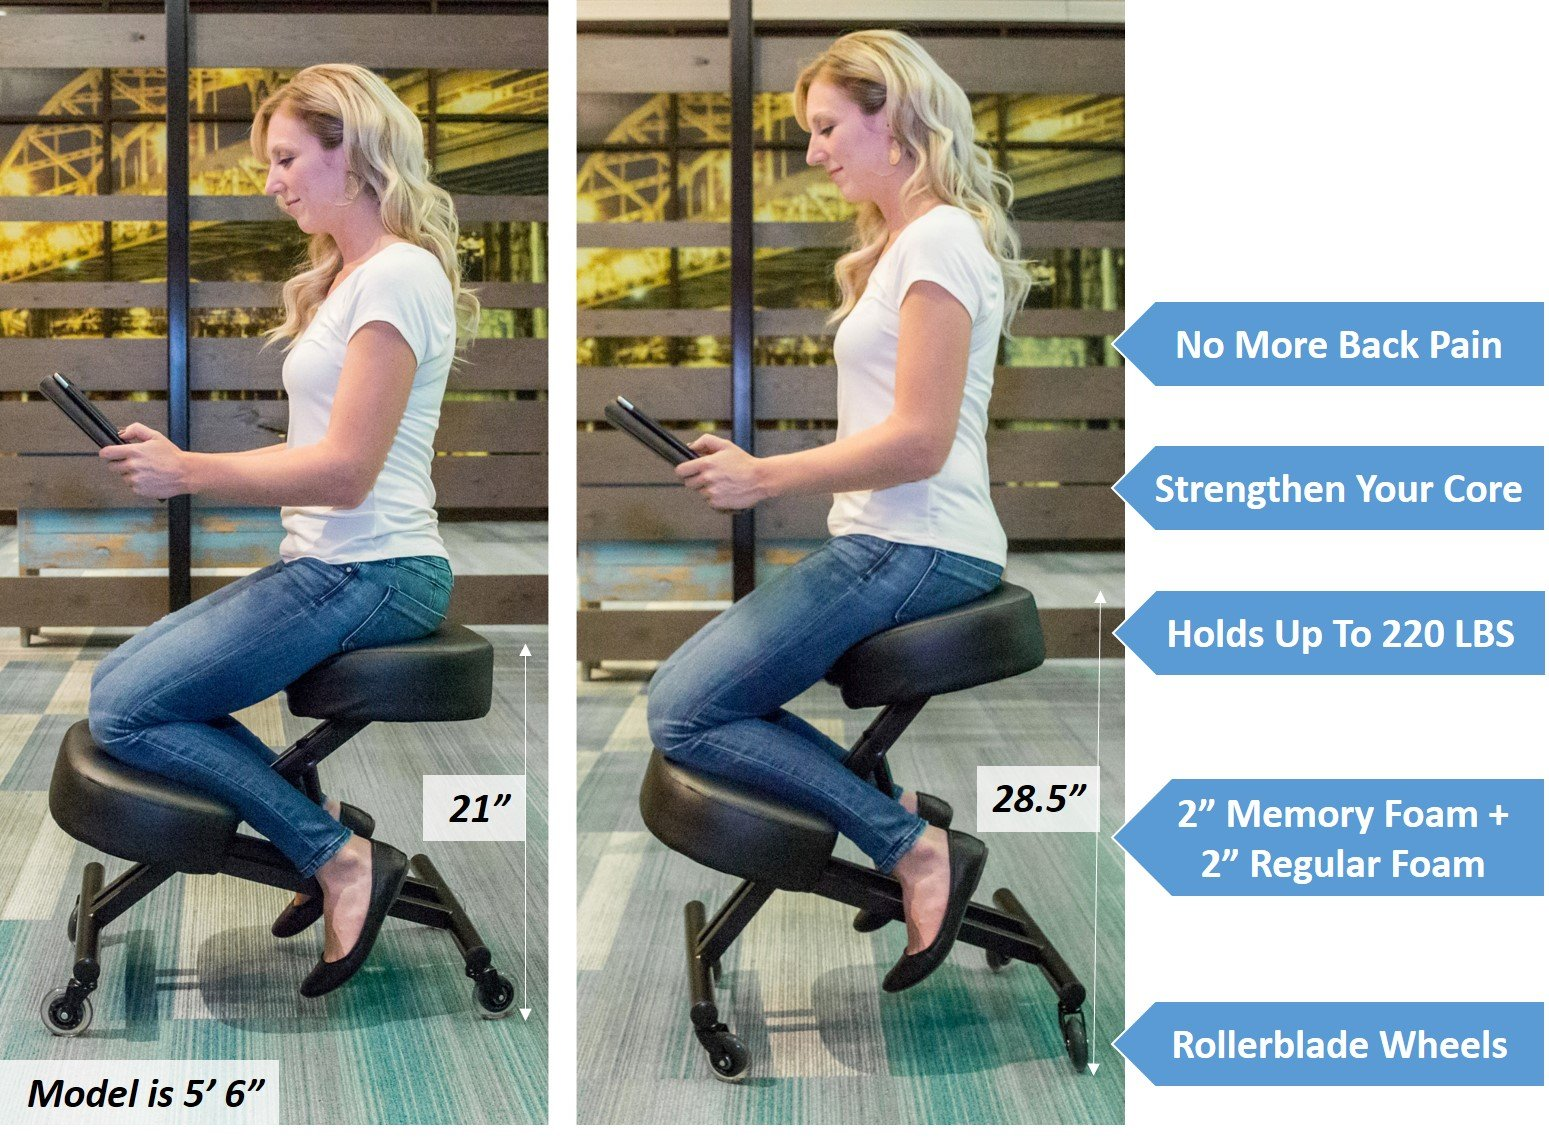 Sleekform Ergonomic Kneeling Chair M2 (Memory/Regular Foam), Adjustable Stool for Home, Office, and Meditation - Rollerblade Casters by Sleekform (Image #4)